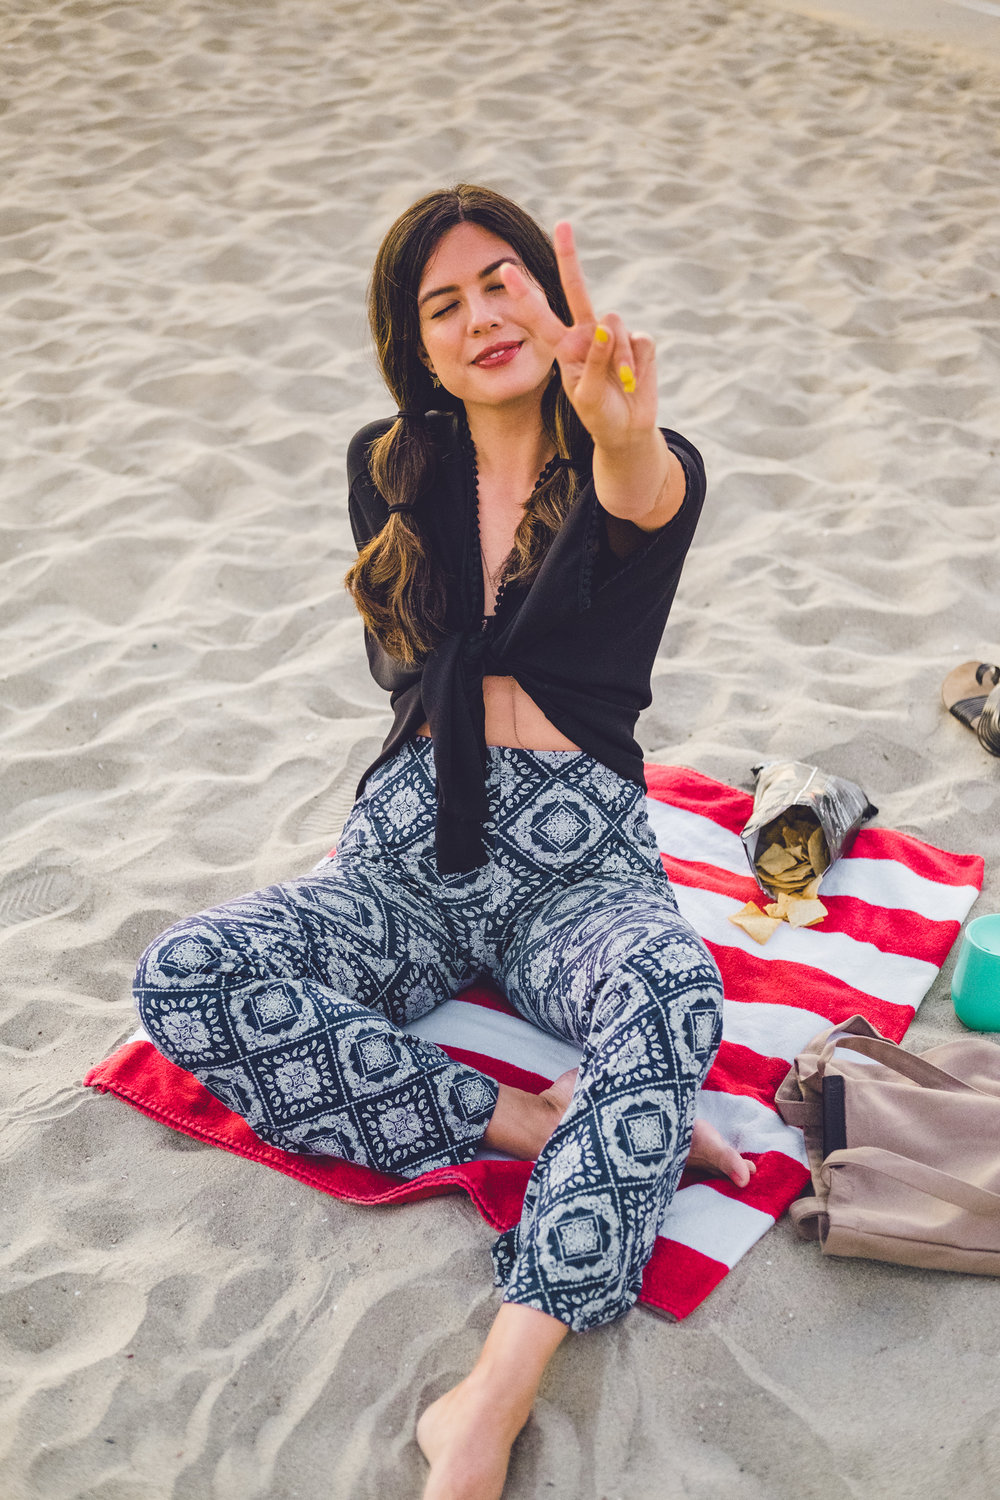 Rachel Off Duty: Woman at the Beach in Los Angeles